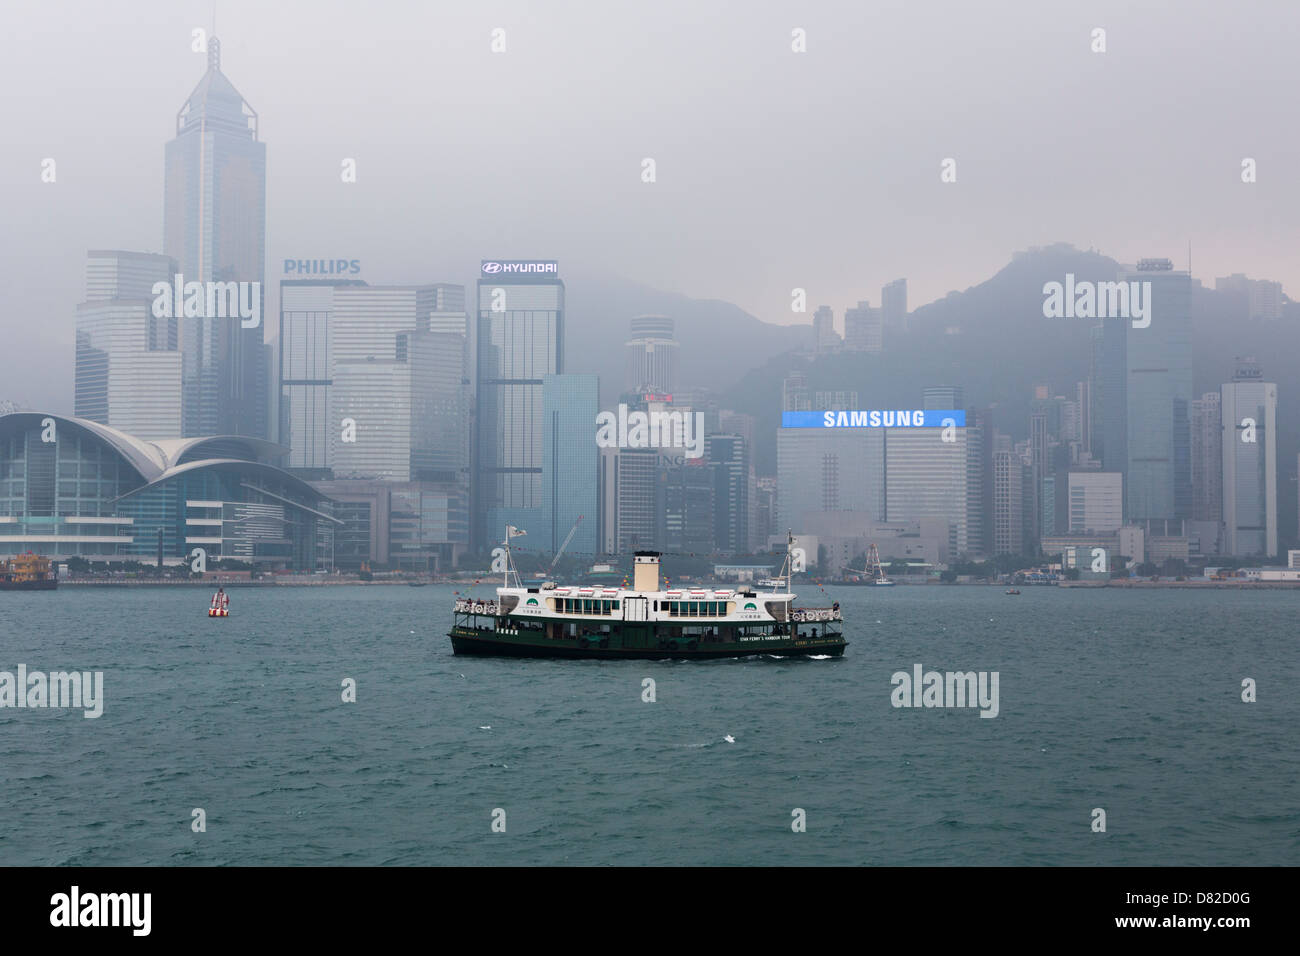 Star ferry crossing the Victoria Harbour in Hong Kong on a hazy day from Kowloon to Wan Chai Stock Photo